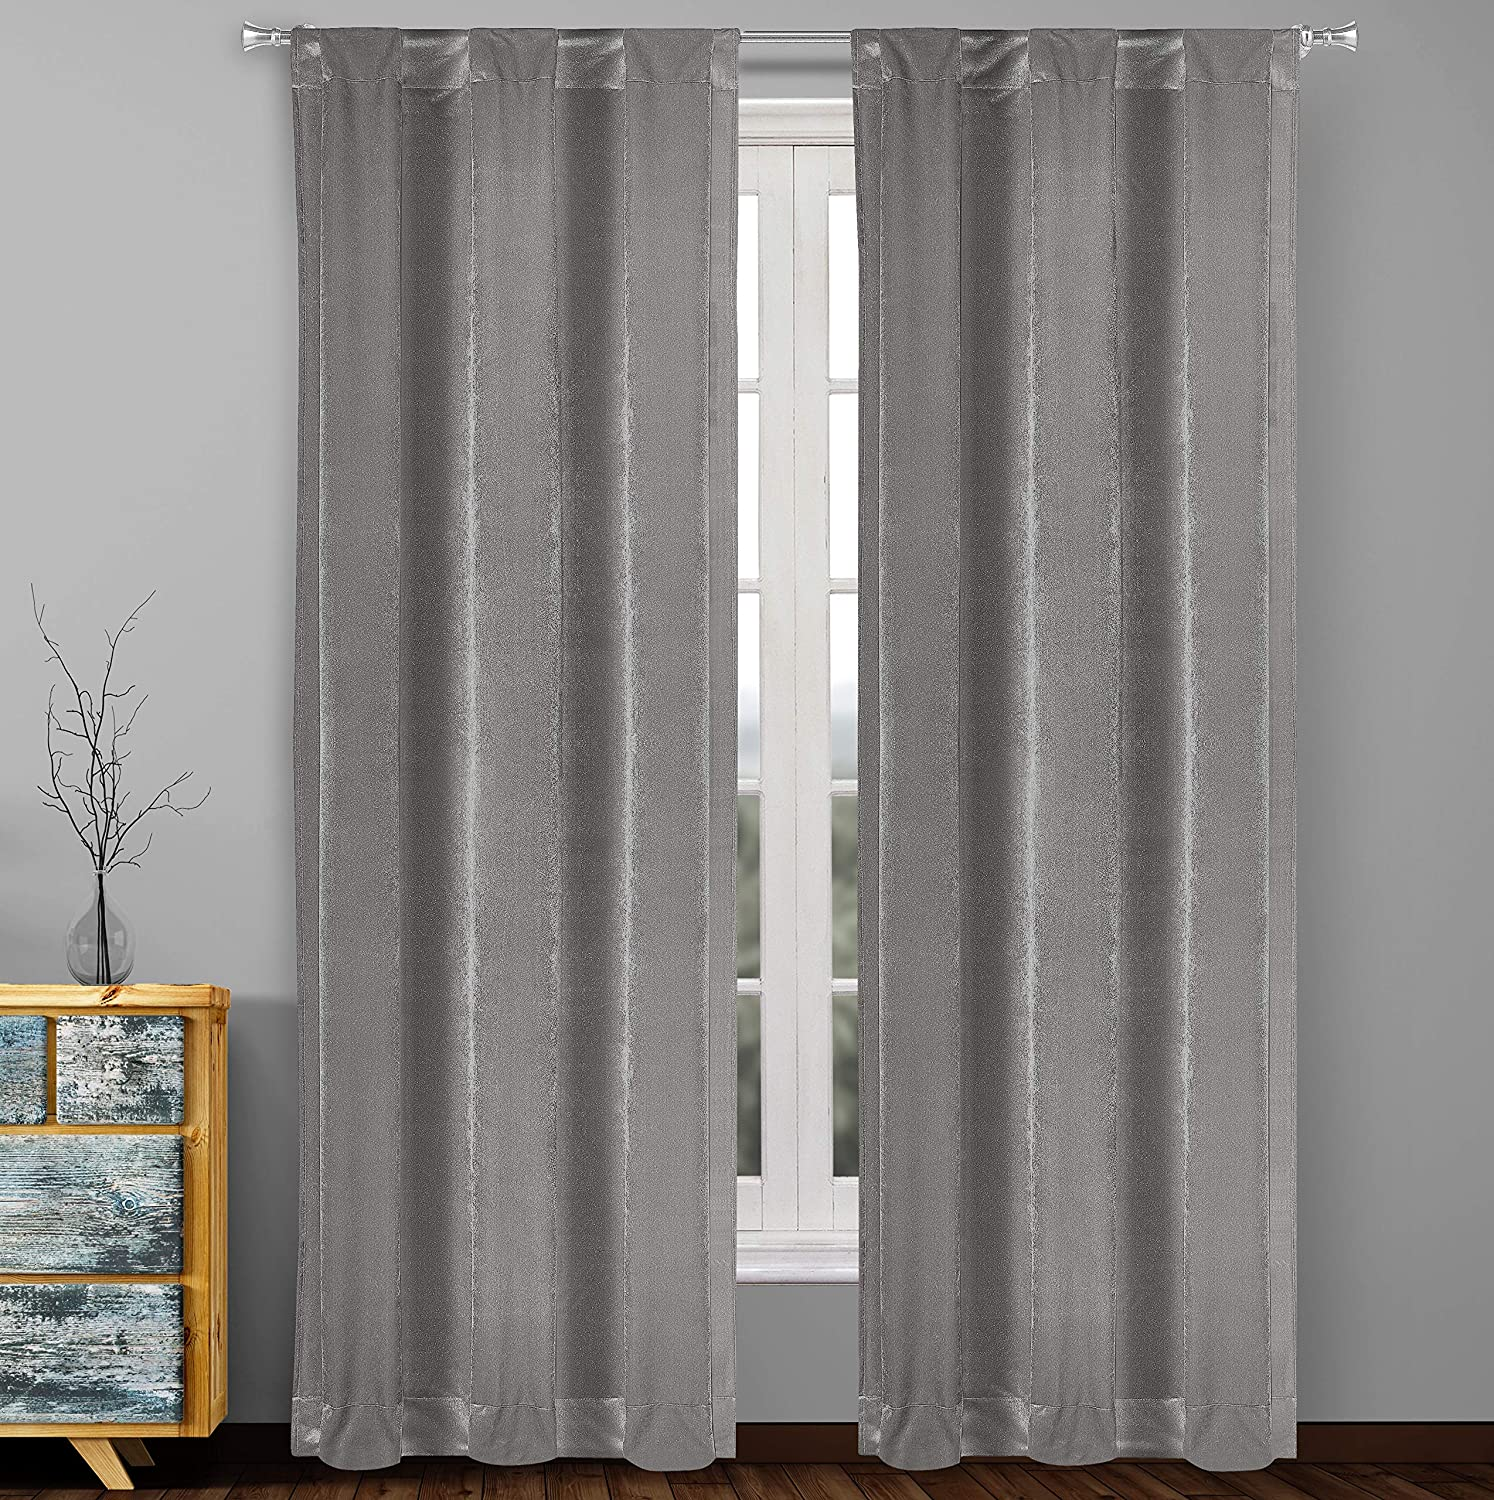 Home Maison Zola Curtain Set, 38x96, Charcoal